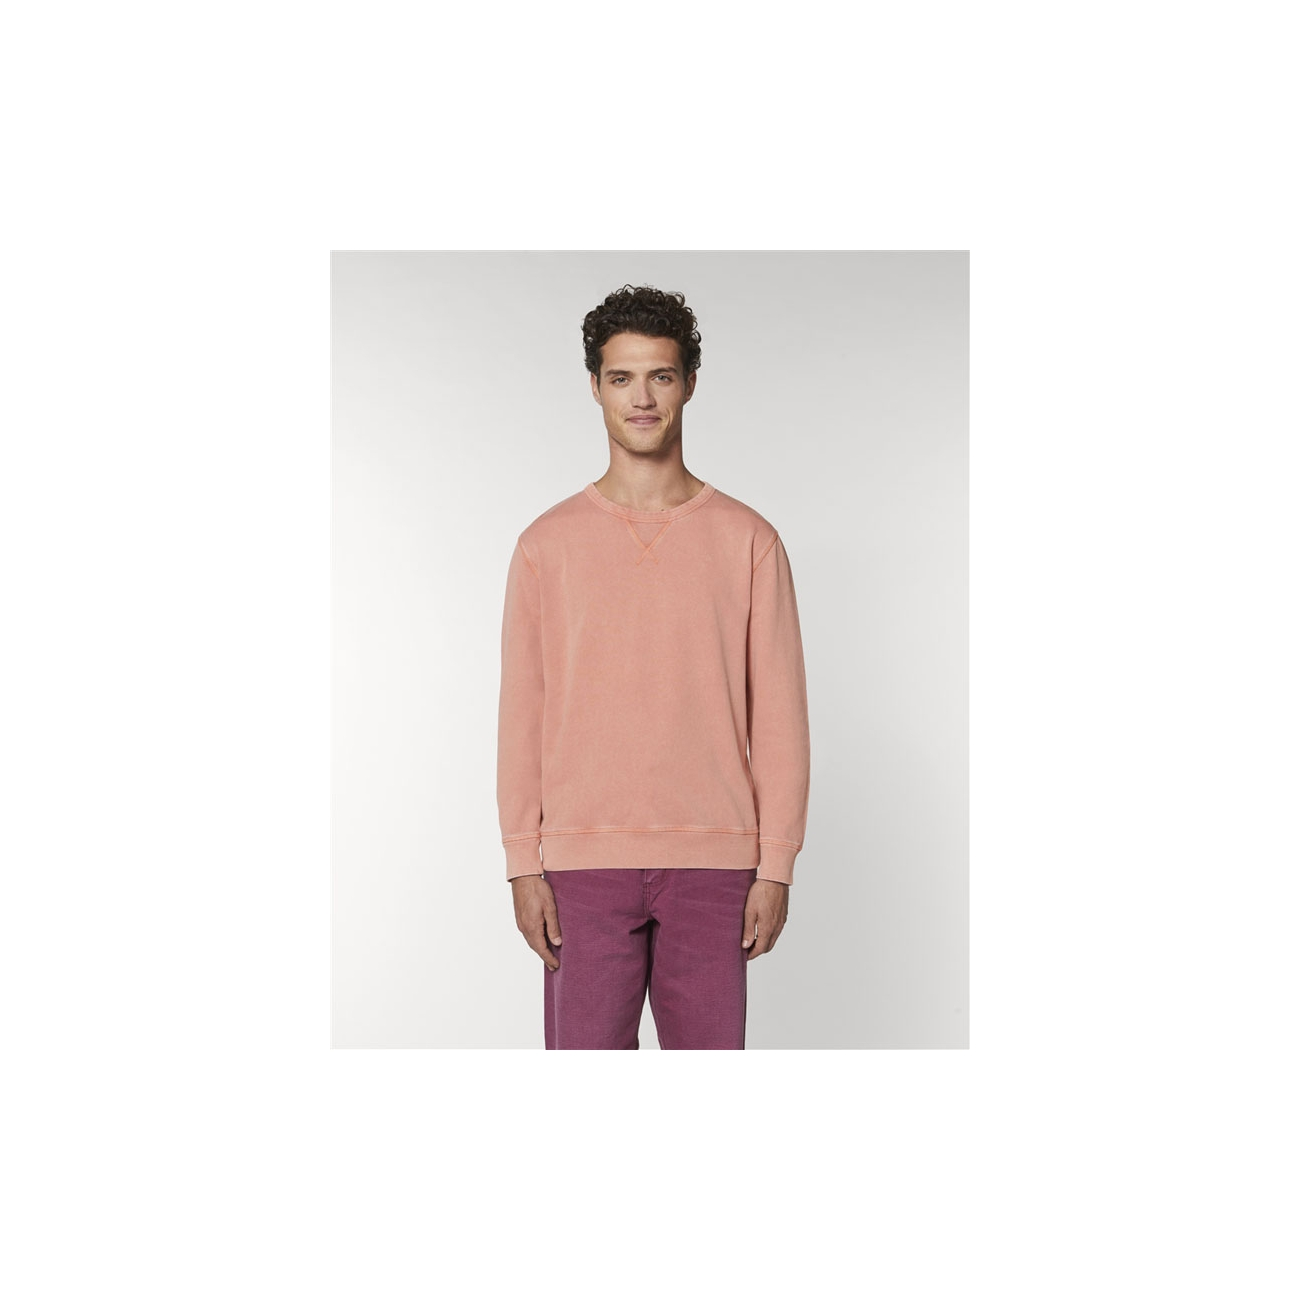 https://tee-shirt-bio.com/9811-thickbox_default/sweat-shirt-homme-sweat-col-rond-coton-bio-corail-delave.jpg